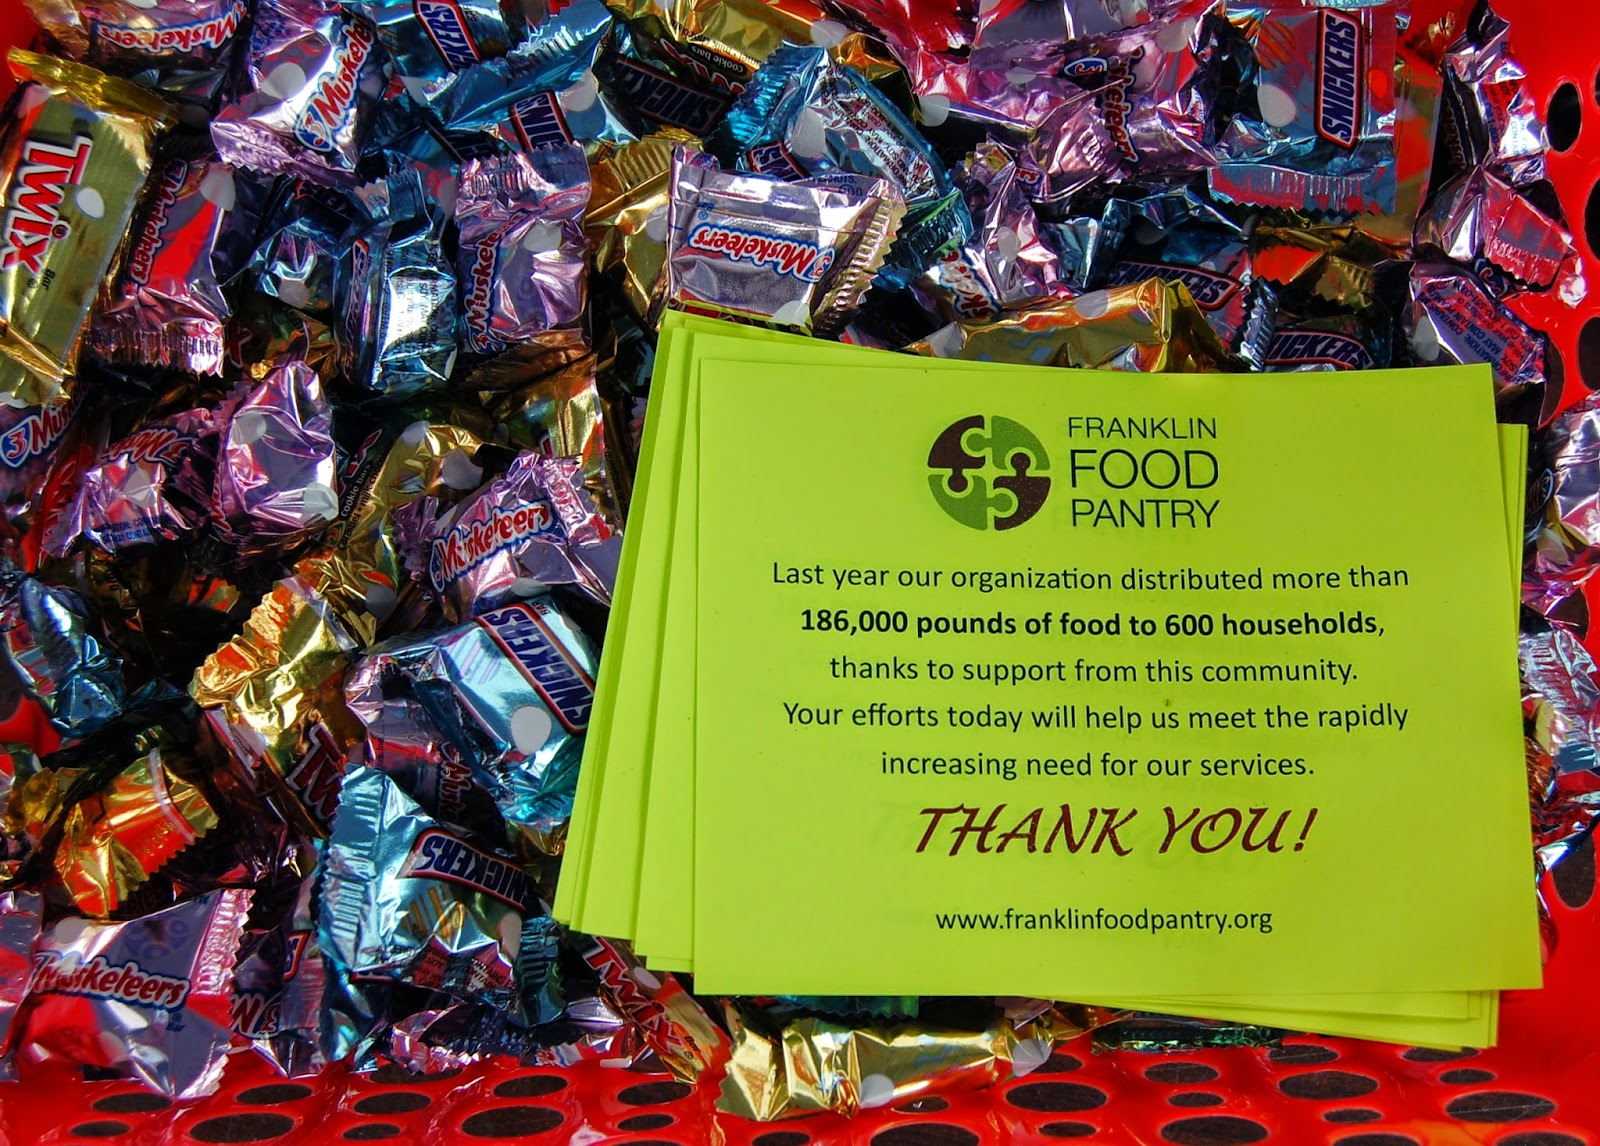 thank you notes and candy for the postal carriers